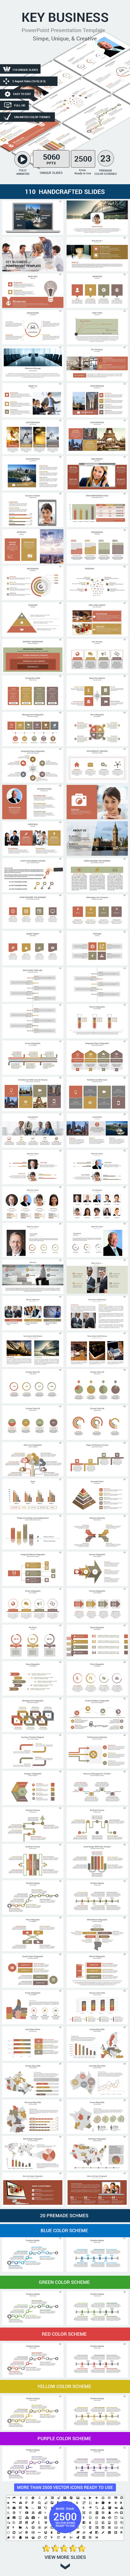 Key Business PowerPoint Presentation Template